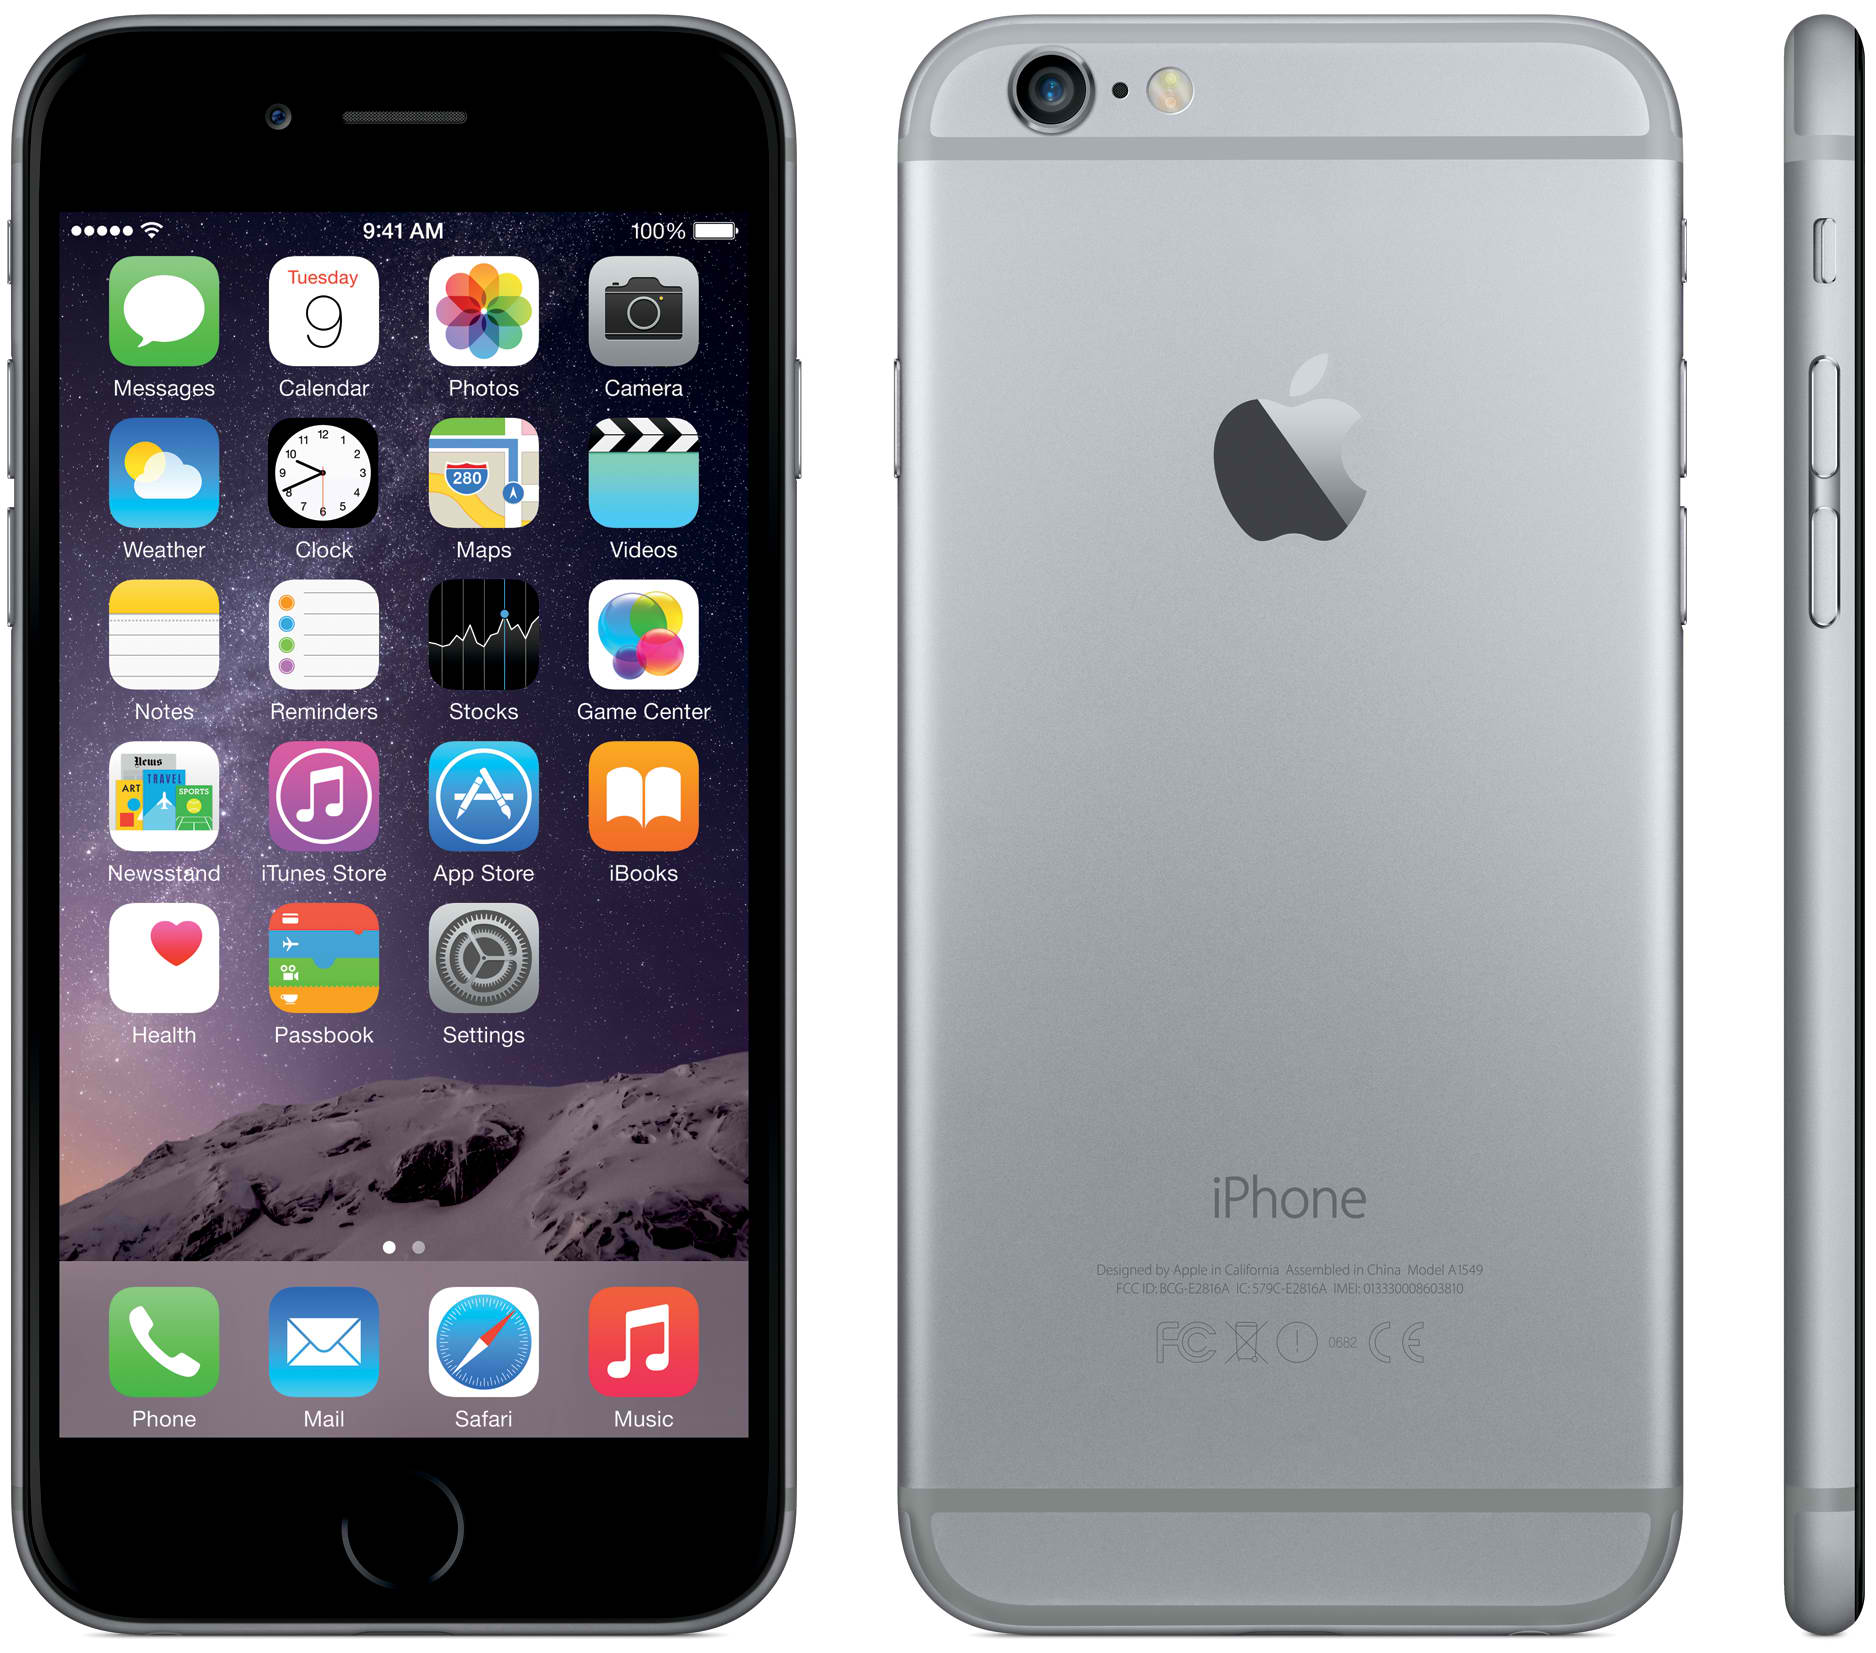 Apple iPhone 6 Plus - Apple a vandut 61,2 milioane de iPhone-uri in primul trimestru